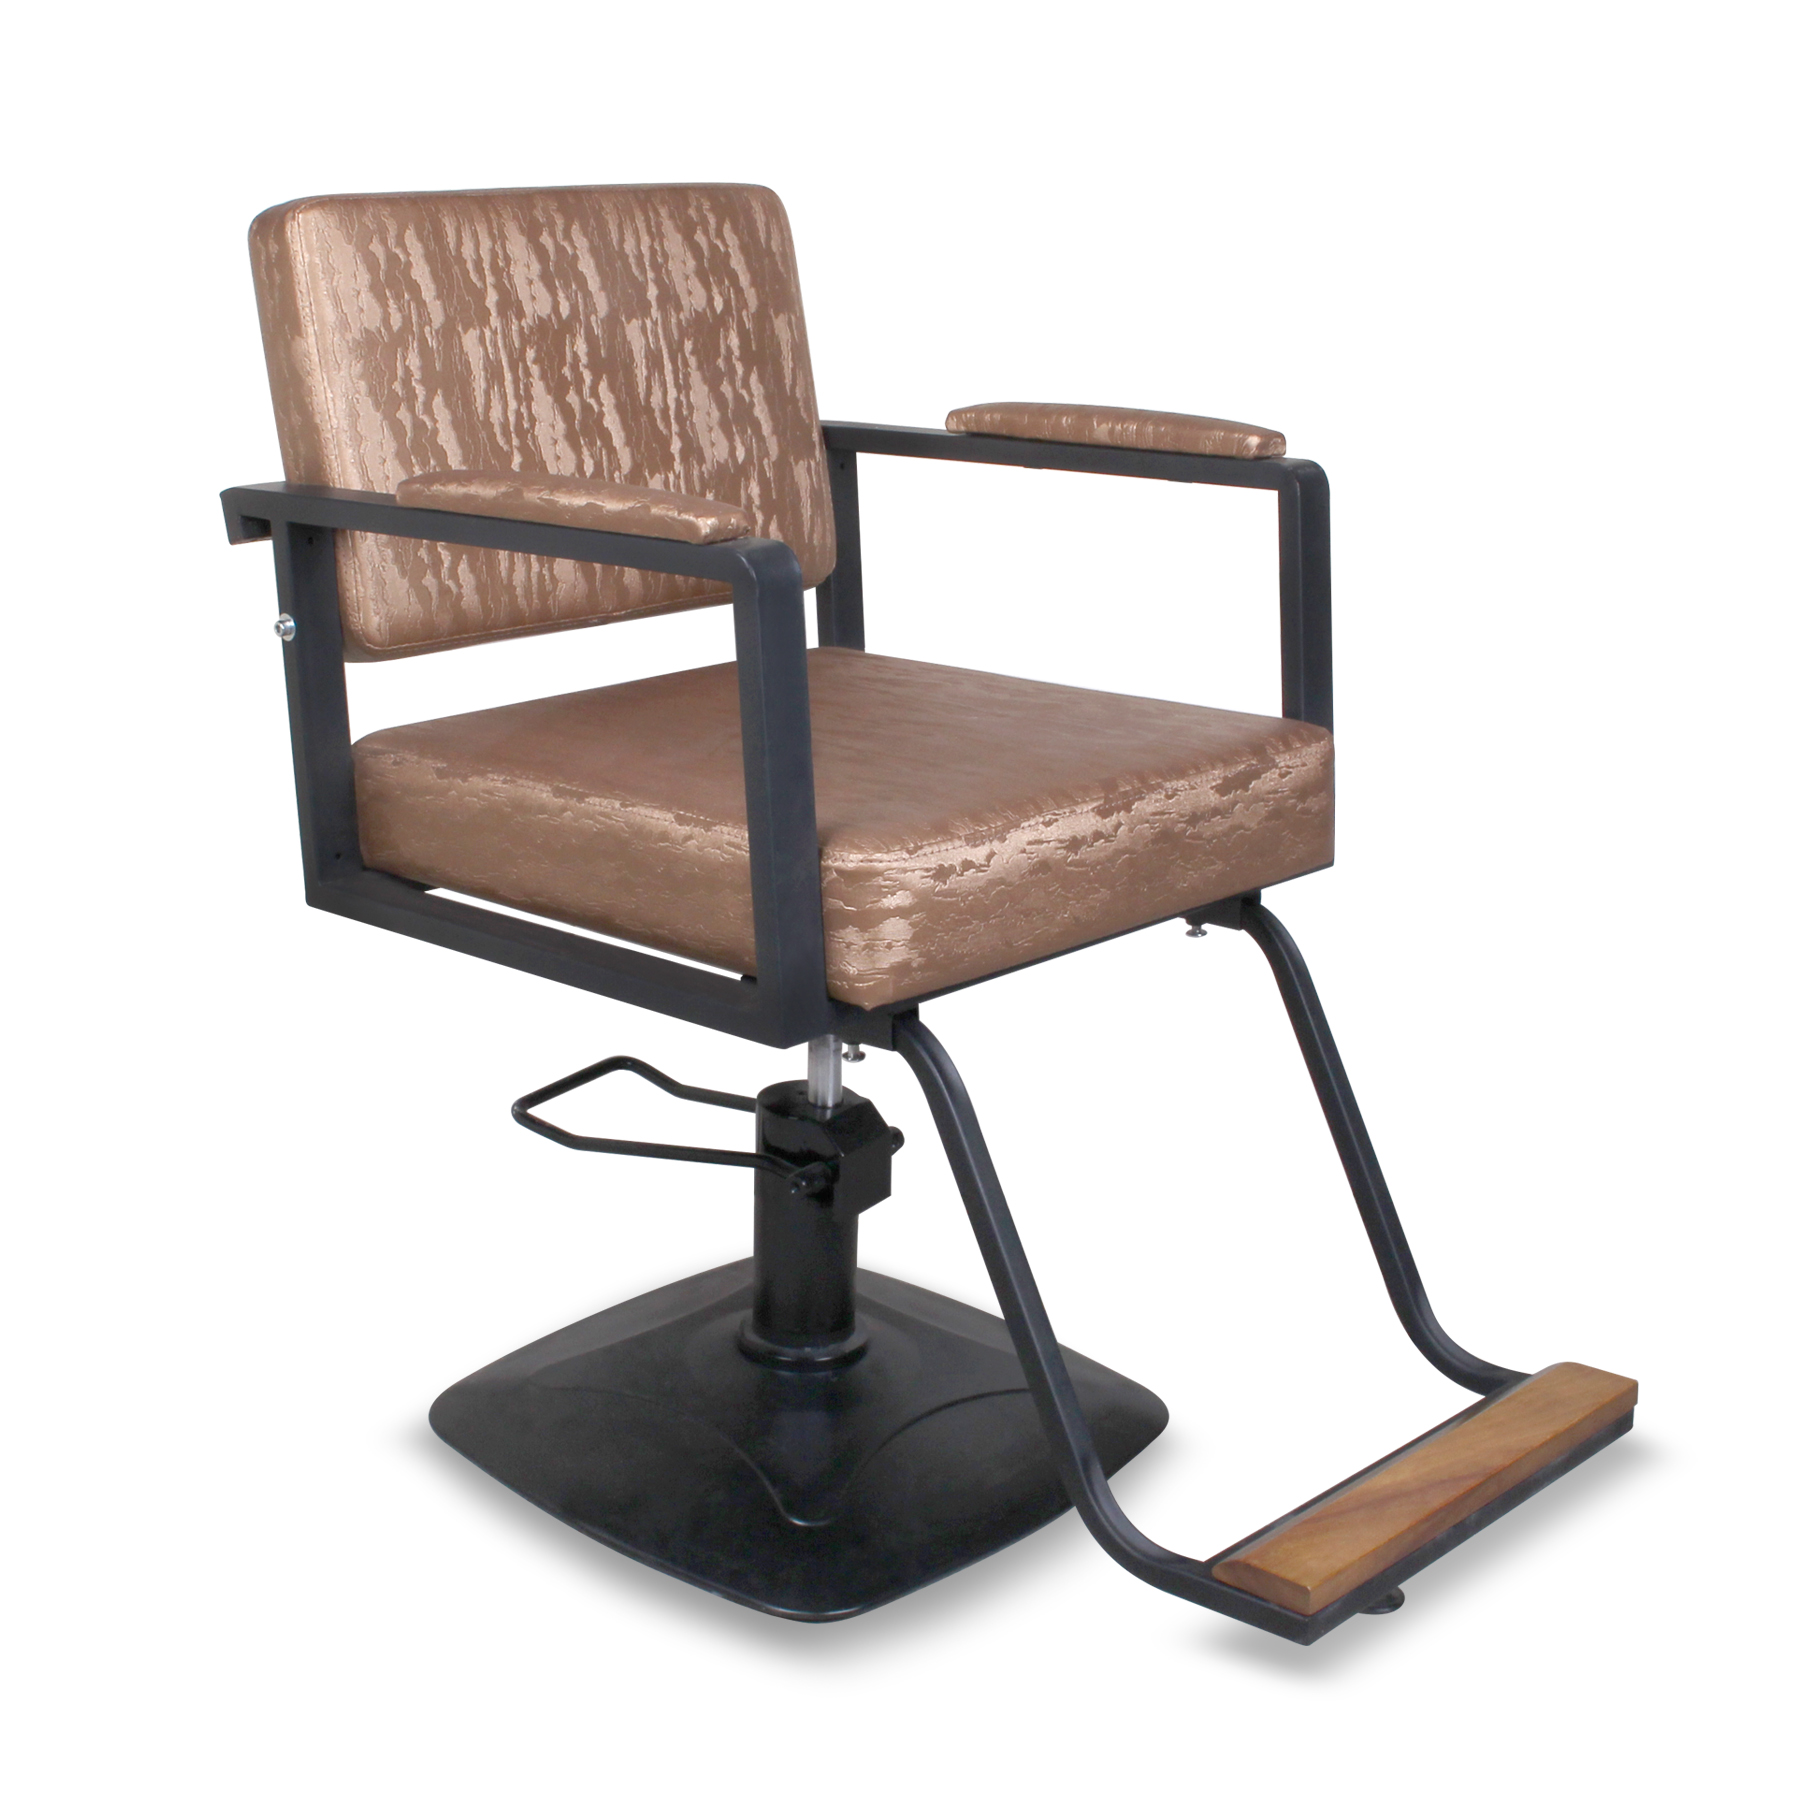 tattooing chairs for sale iron patio chair cushions gold modern metal salon barbers barber styling